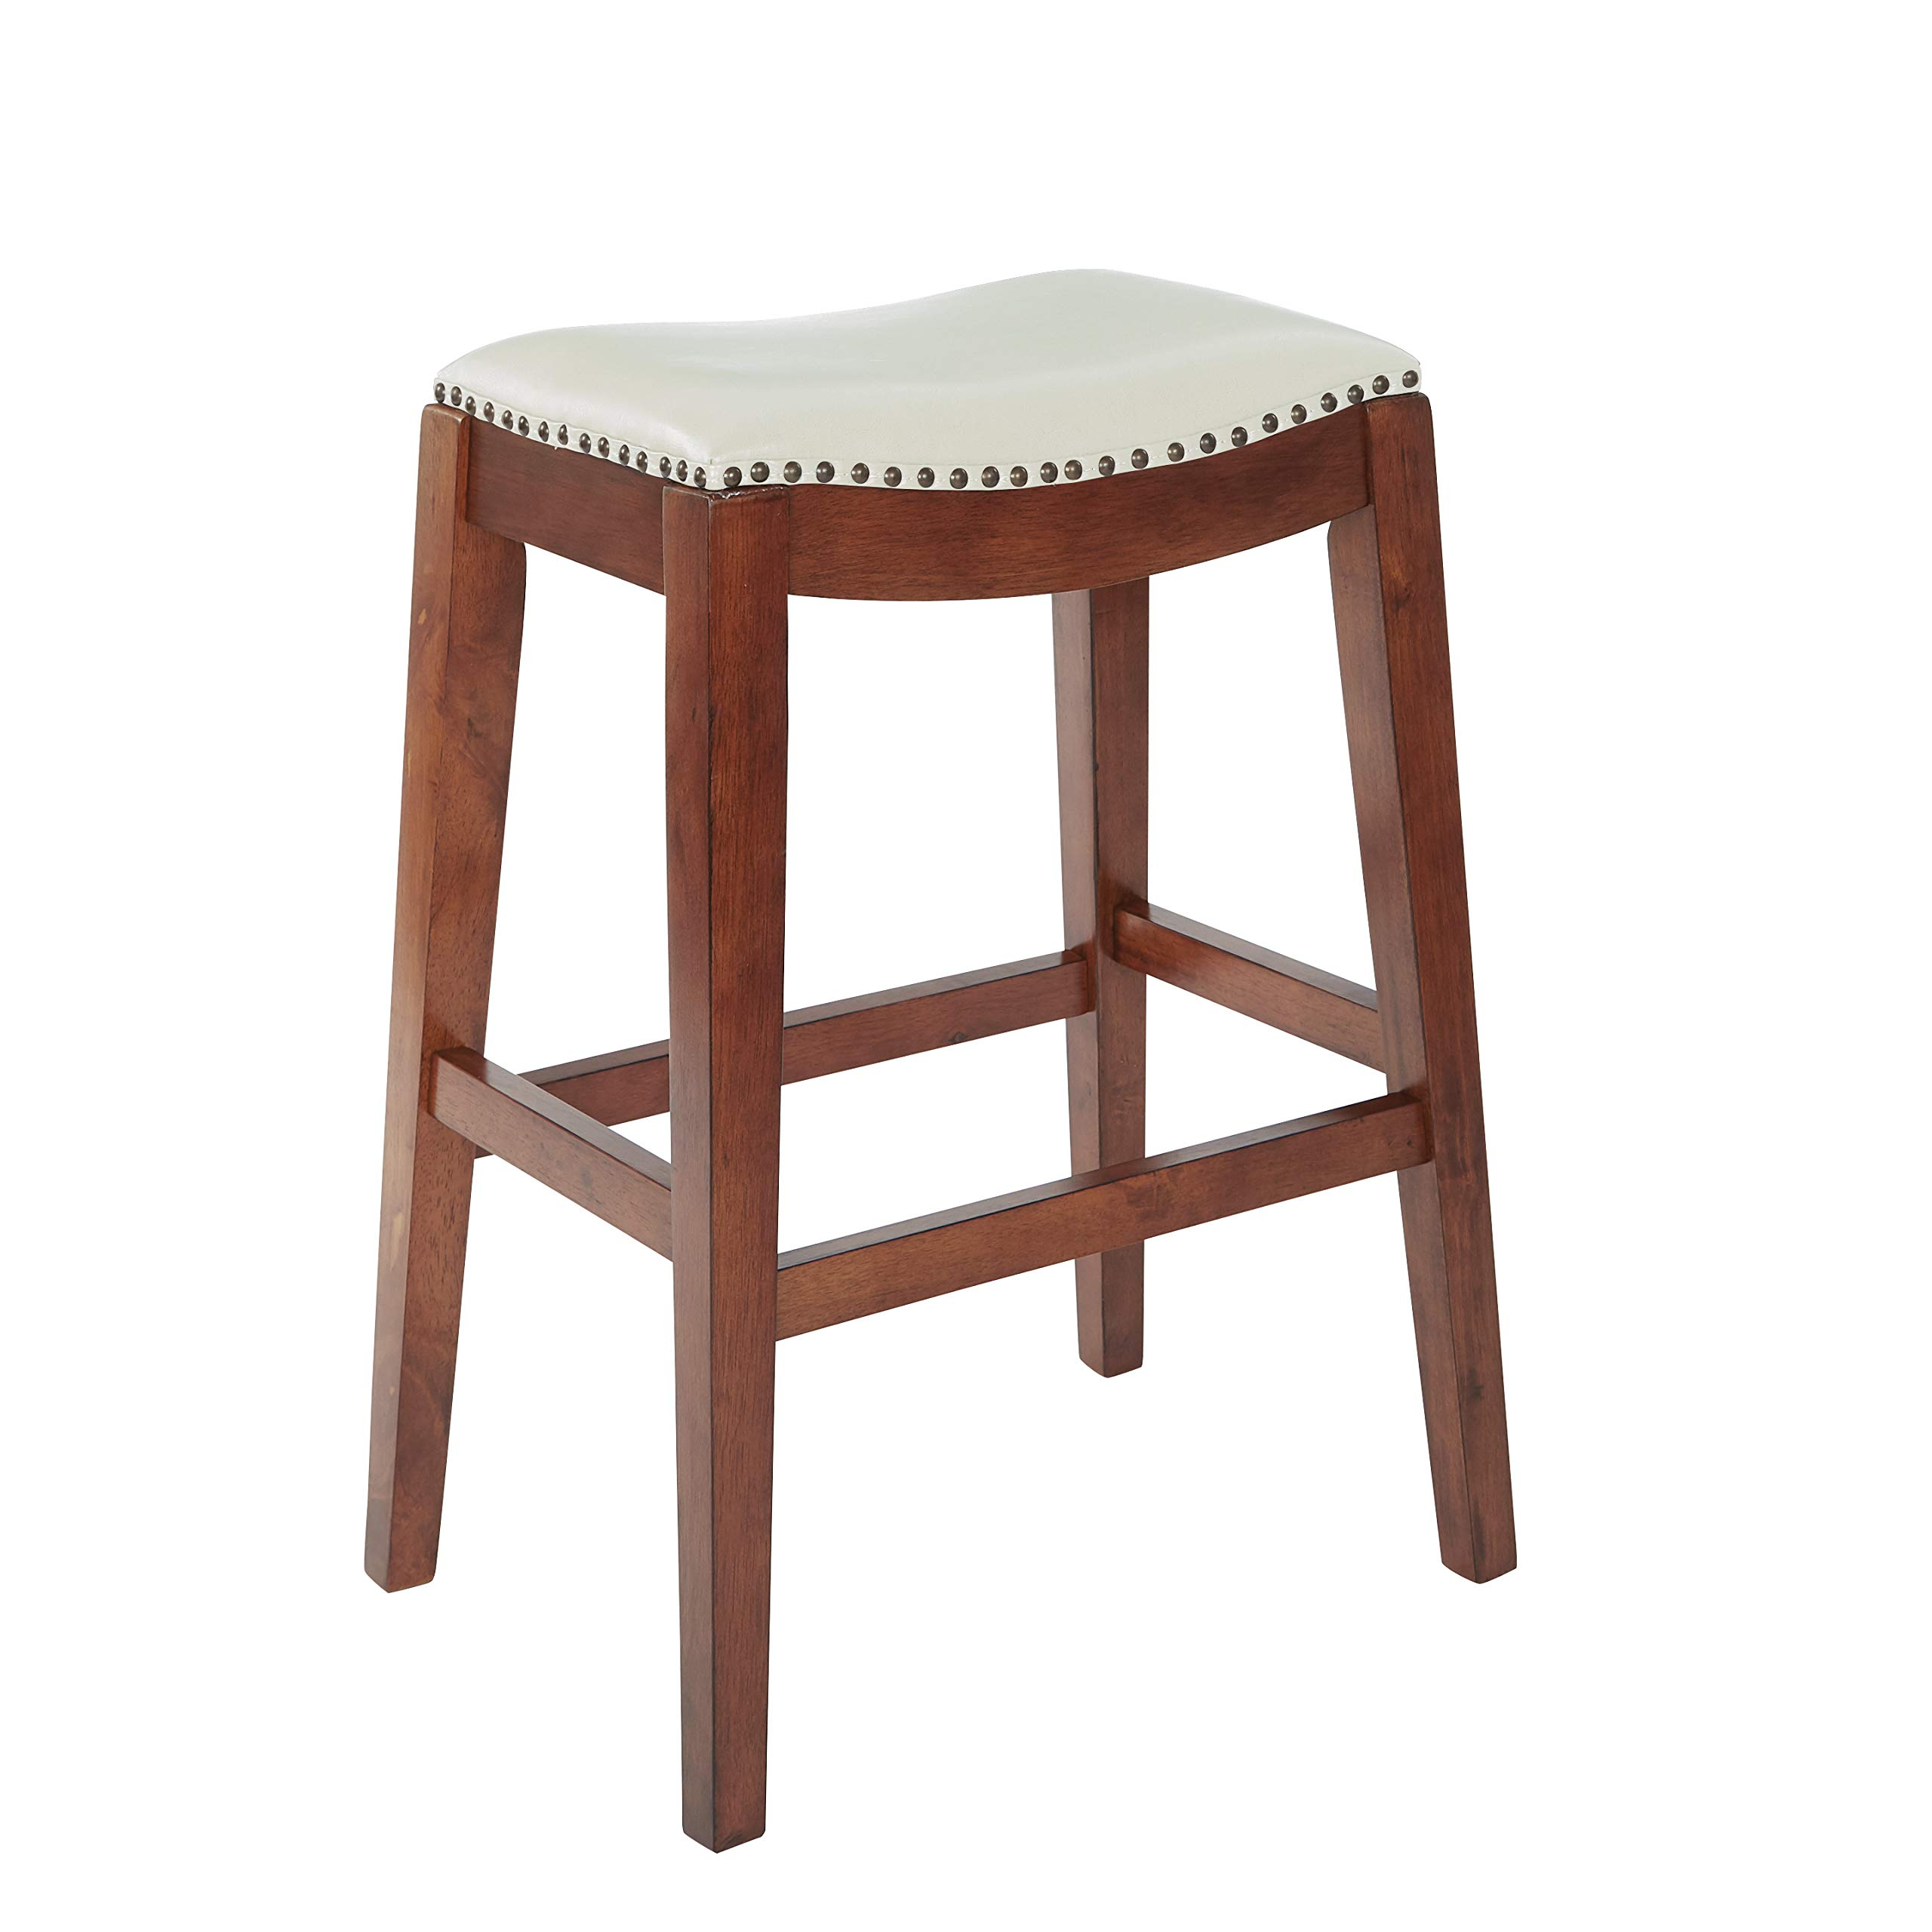 OSP Designs Metro Bonded Leather Bar-Height Saddle Stool with Nail Head Accents and Espresso Finished Legs, 29-inch Cream